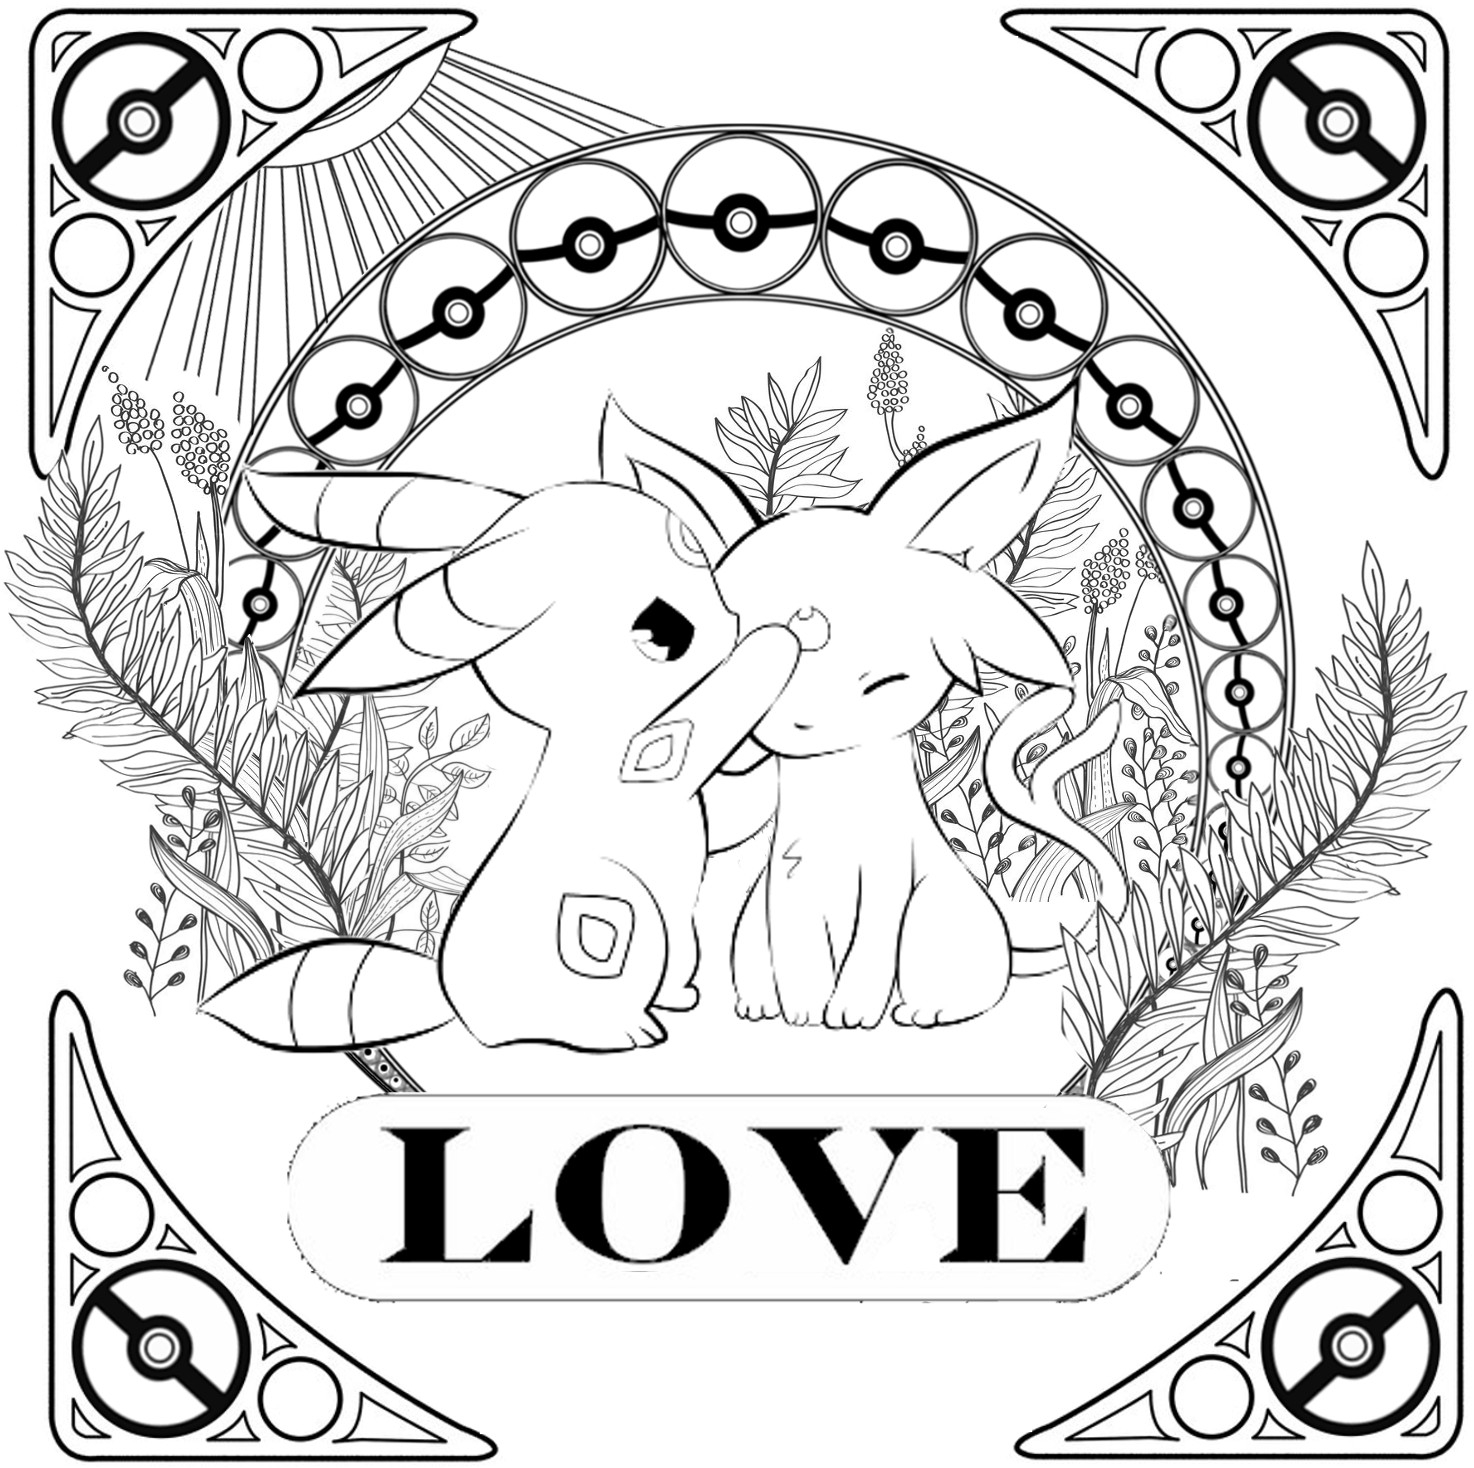 Pokemon Eevee Evolutions Coloring Pages 20 Lovely Eevee Evolutions Coloring Pages Msainfo